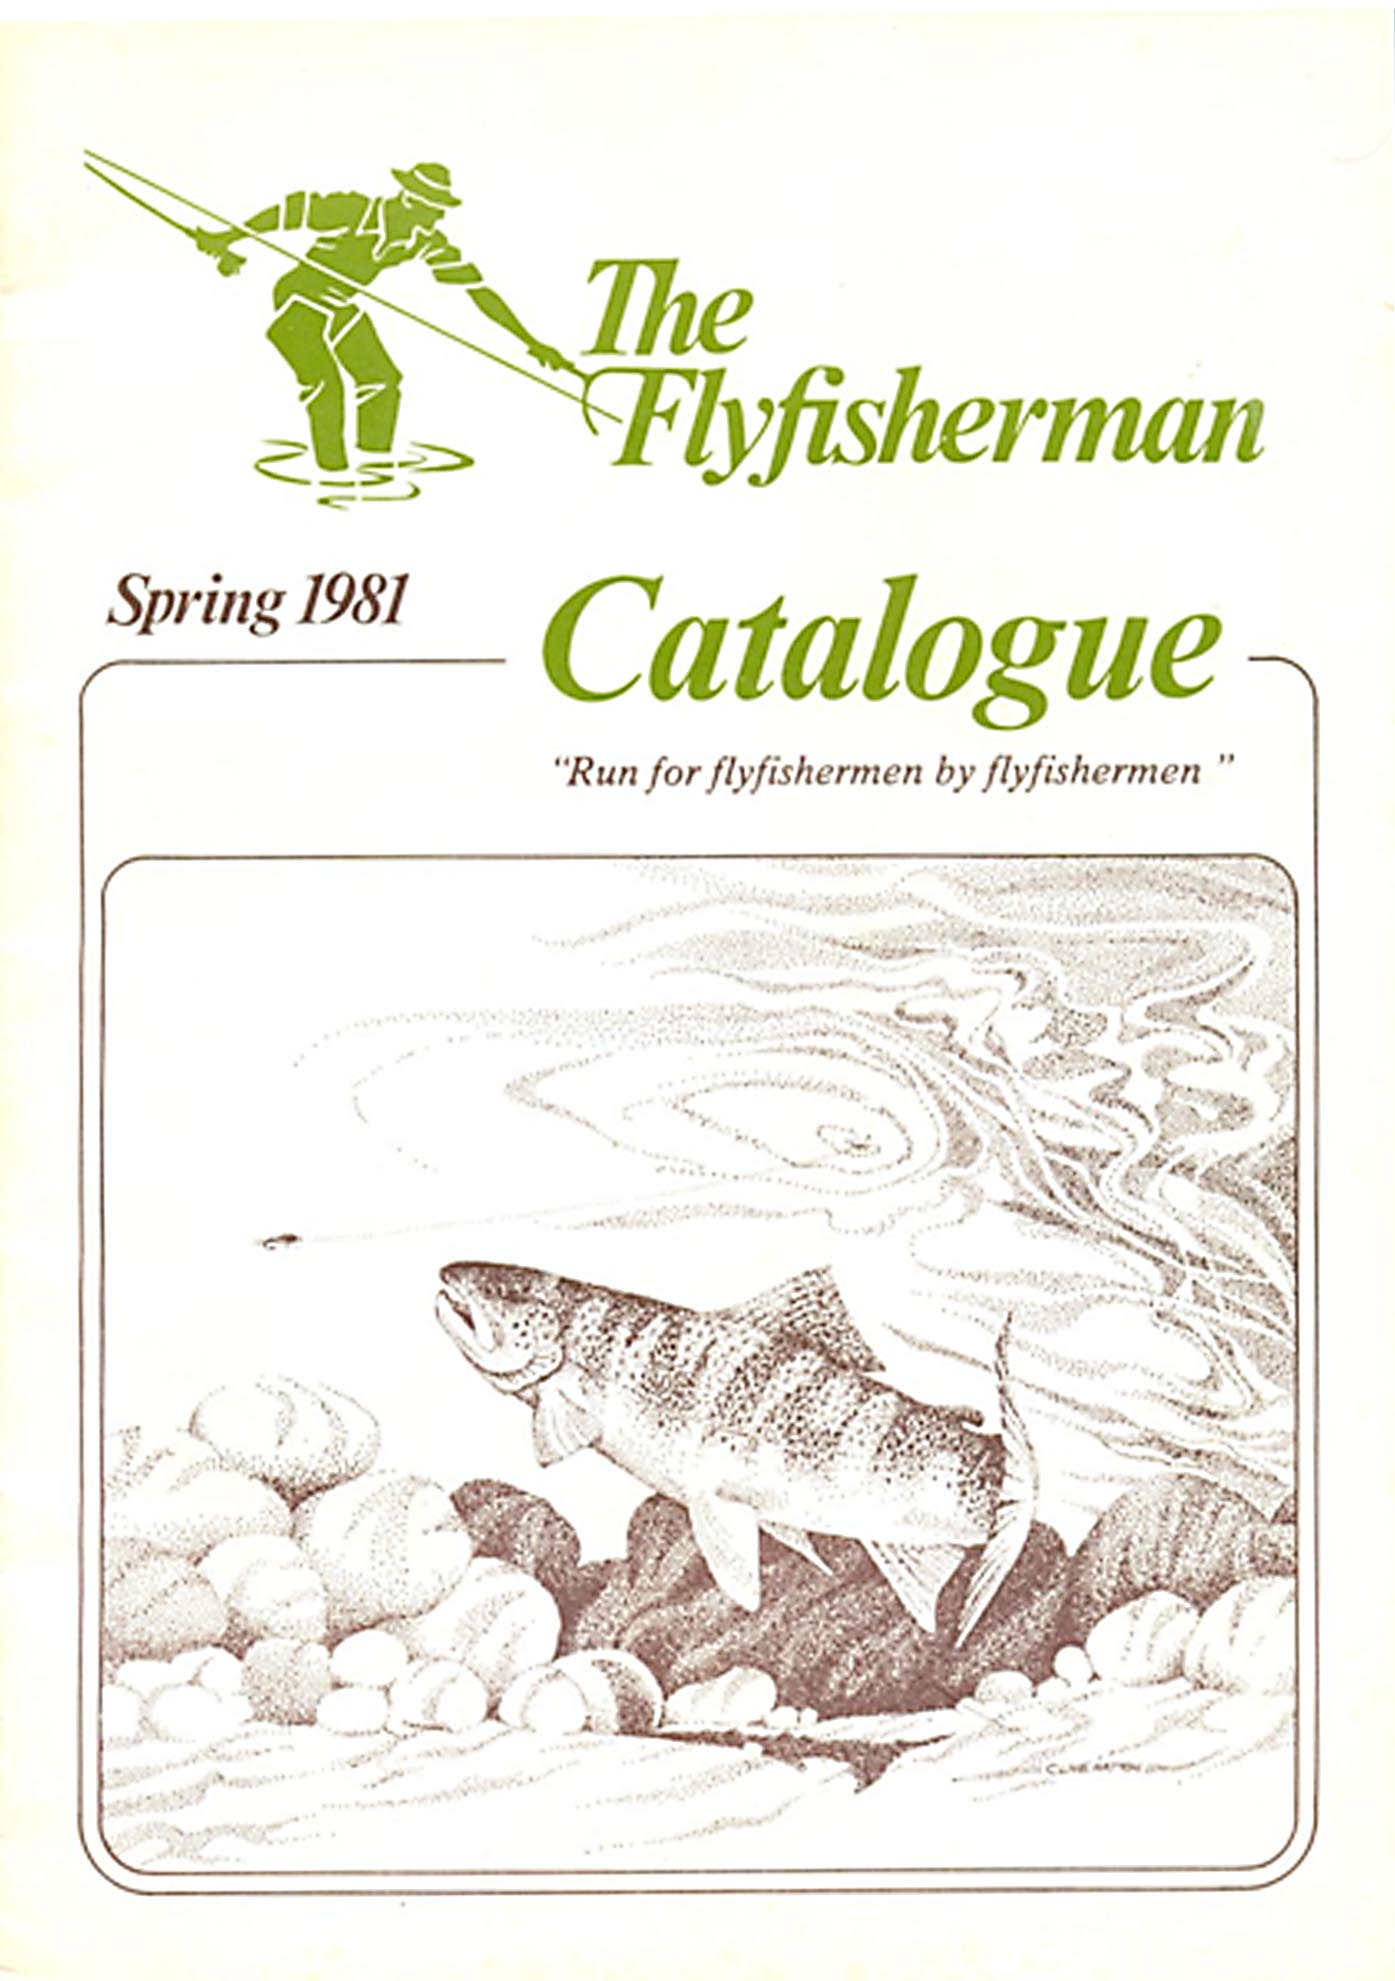 Flyfisherman_Catalogue